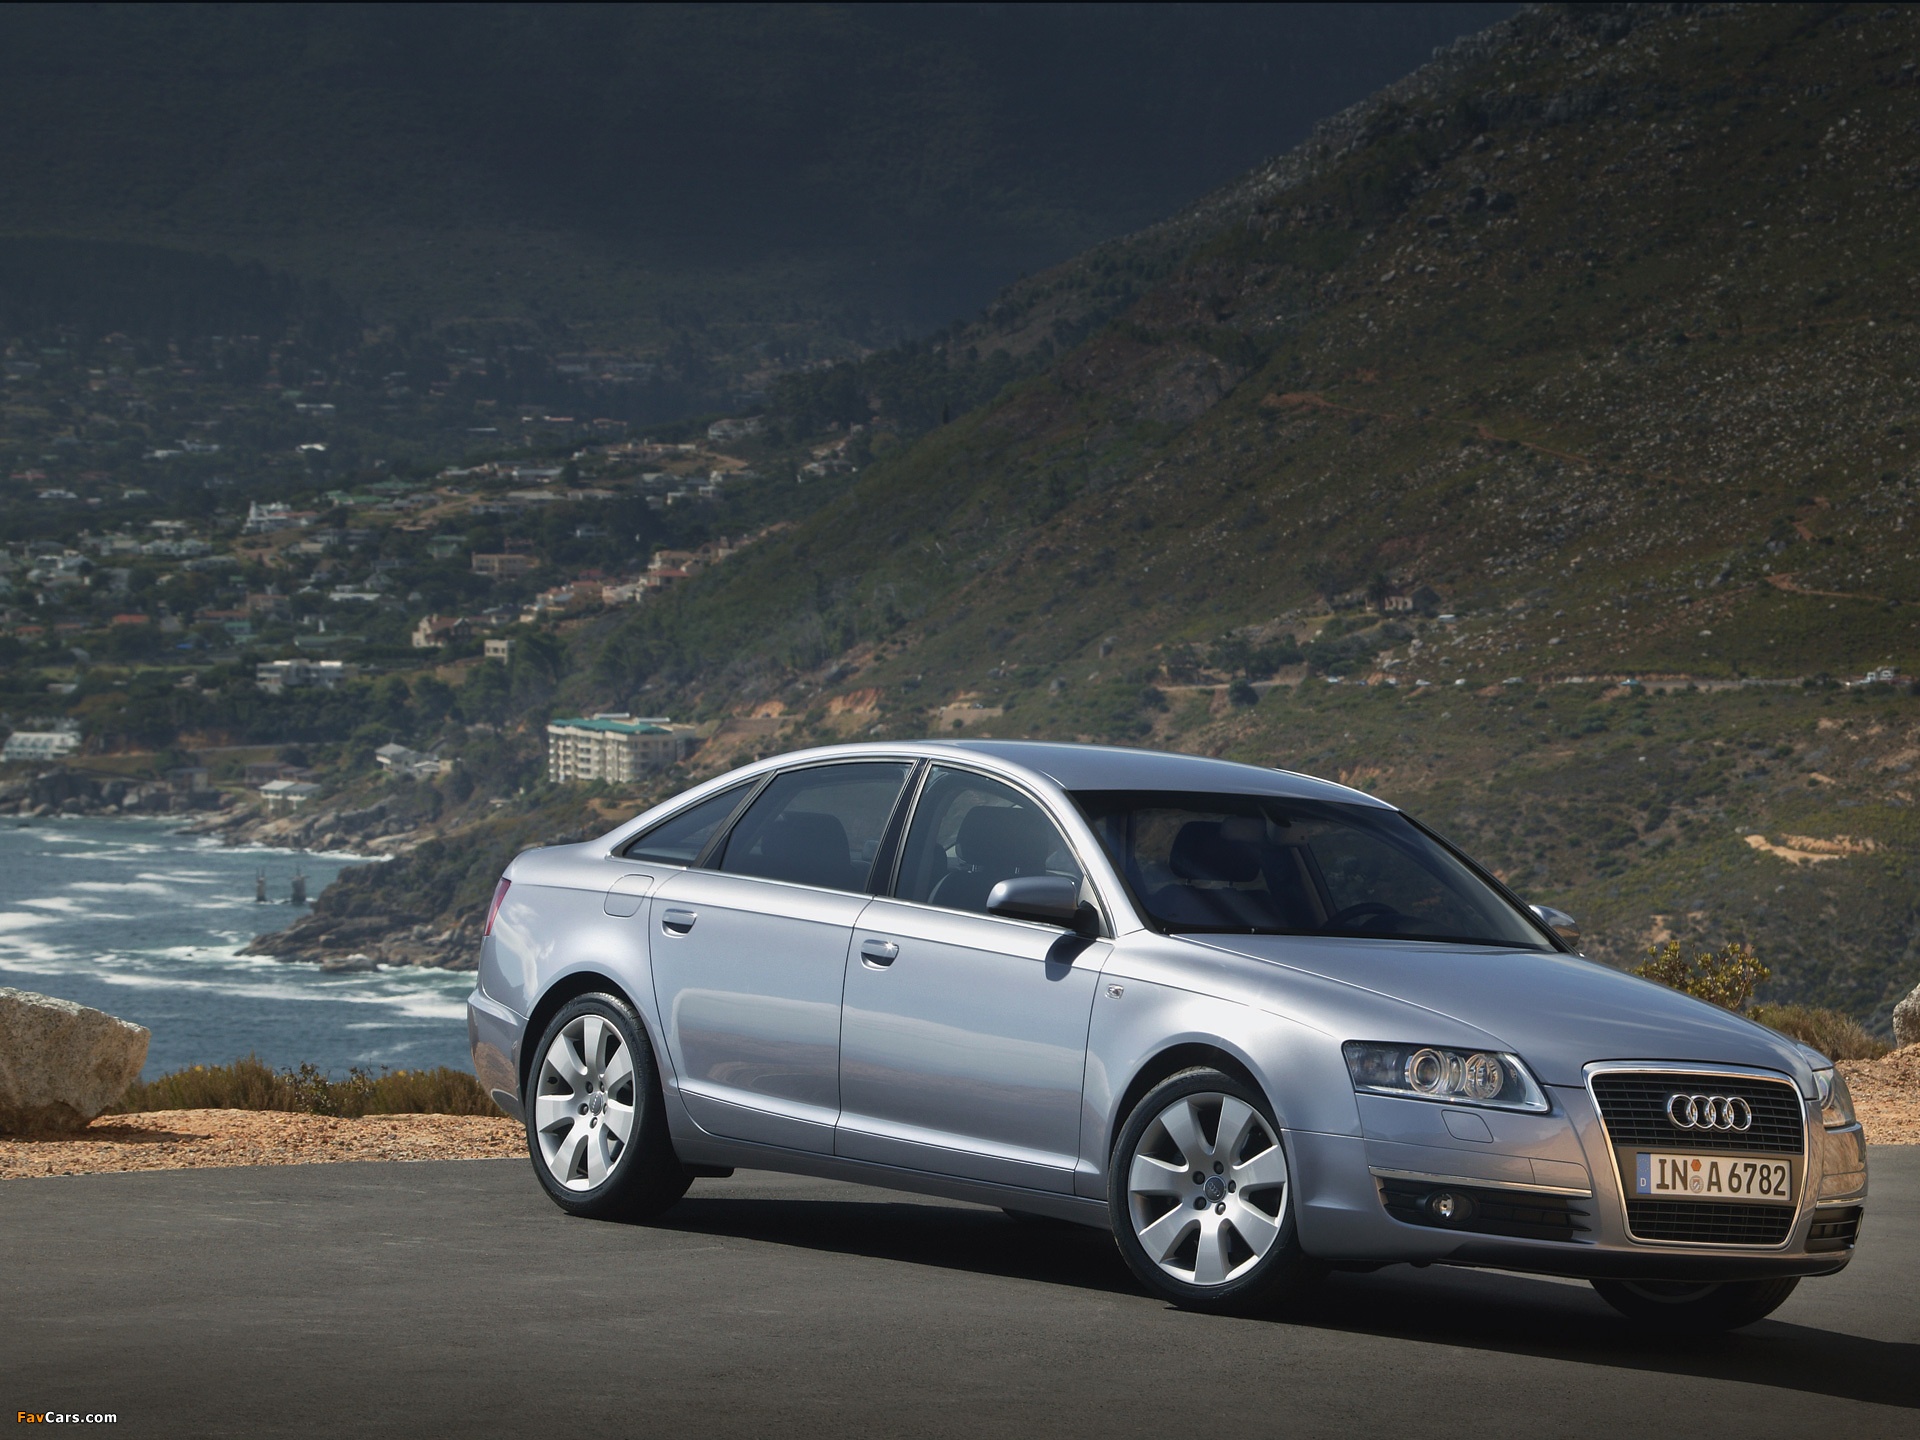 1920x1440 - Audi A6 Wallpapers 14